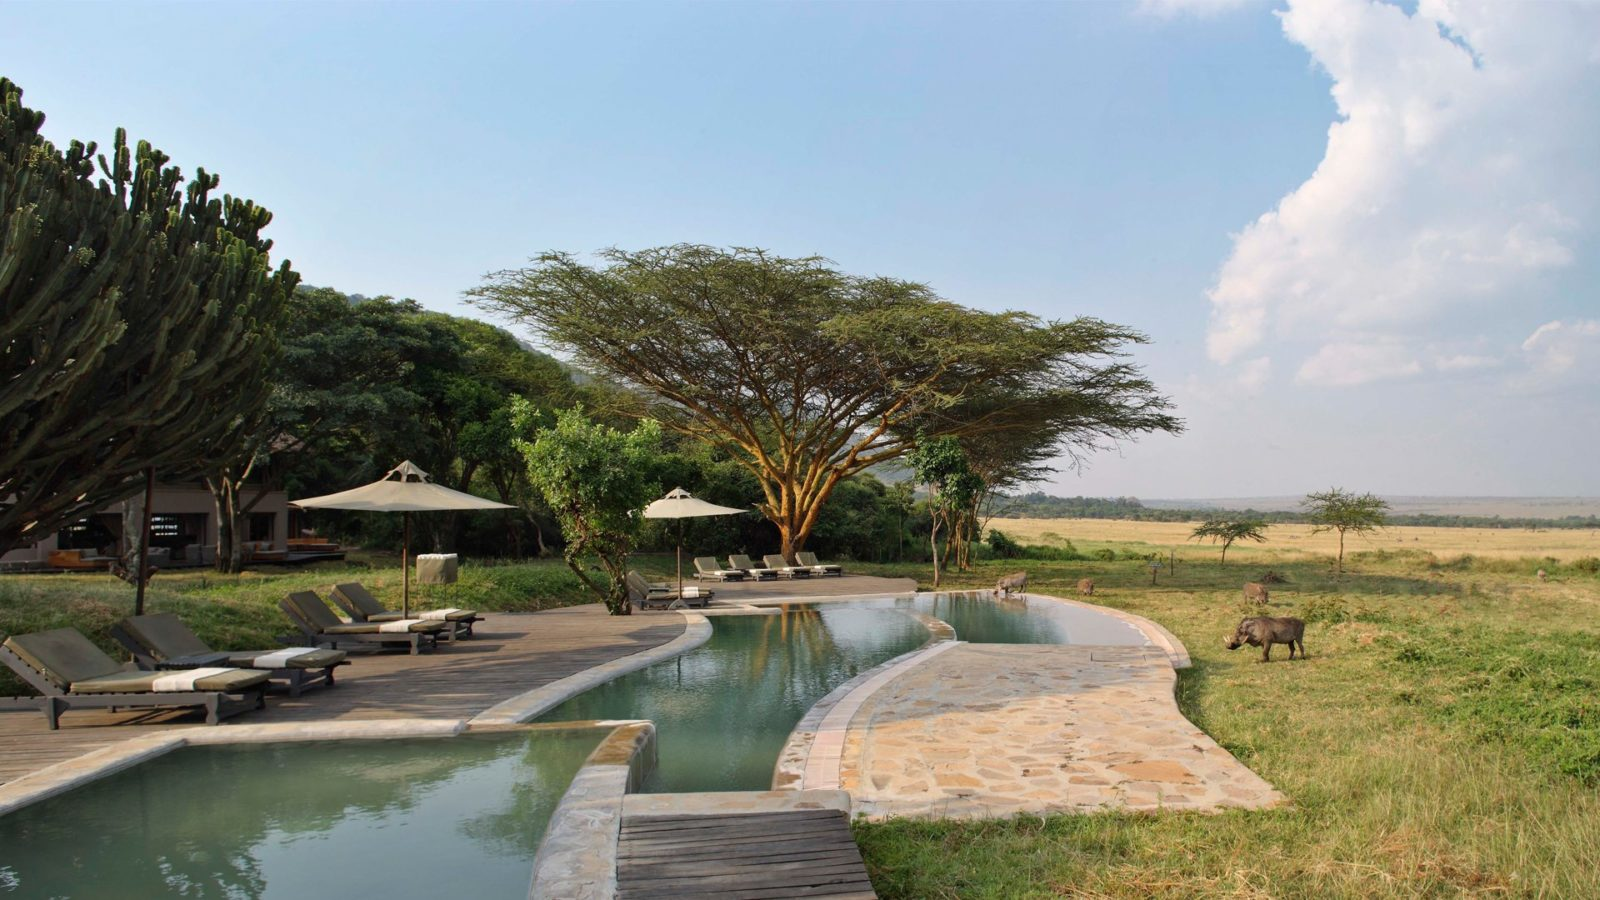 swimming-pool-overlooking-the-masai-mara-on-a-luxury-safari-at-andbeyond-kichwa-tembo-in-kenya-1600x900